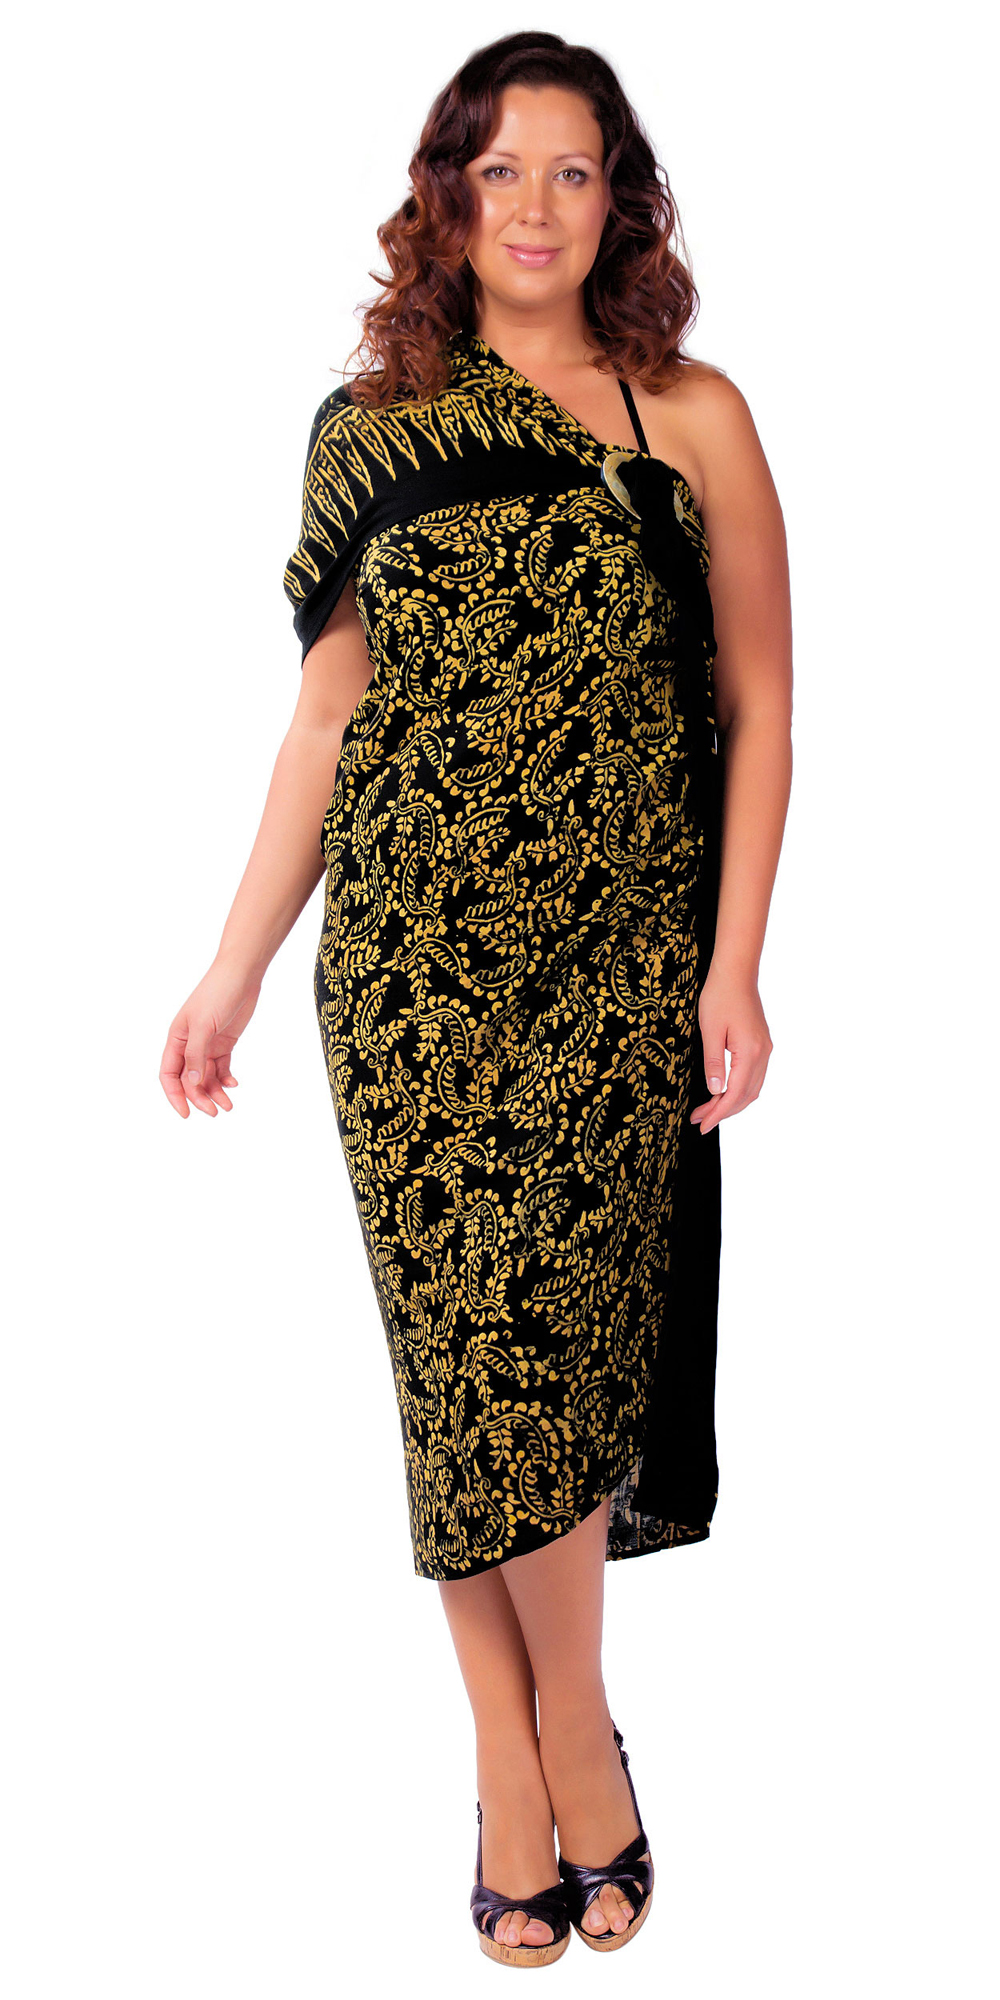 Size Abstract Floral Sarong Fringeless Glimmer Glam Gold And Black